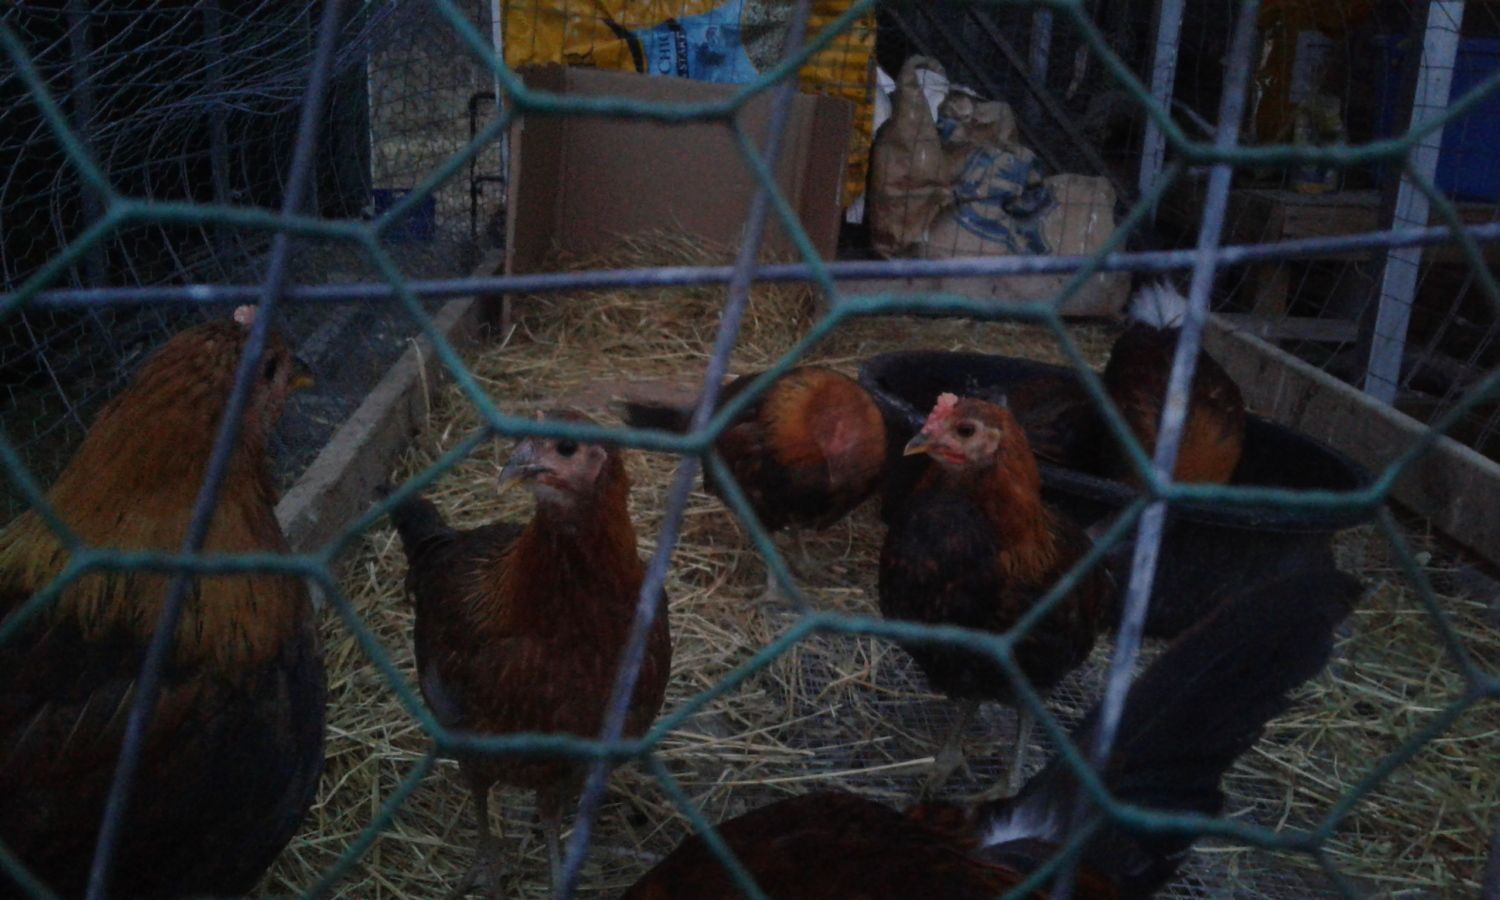 centrarchid's photos in Rearing Young Chickens in Winter Without Supplemental Heat in a Barn